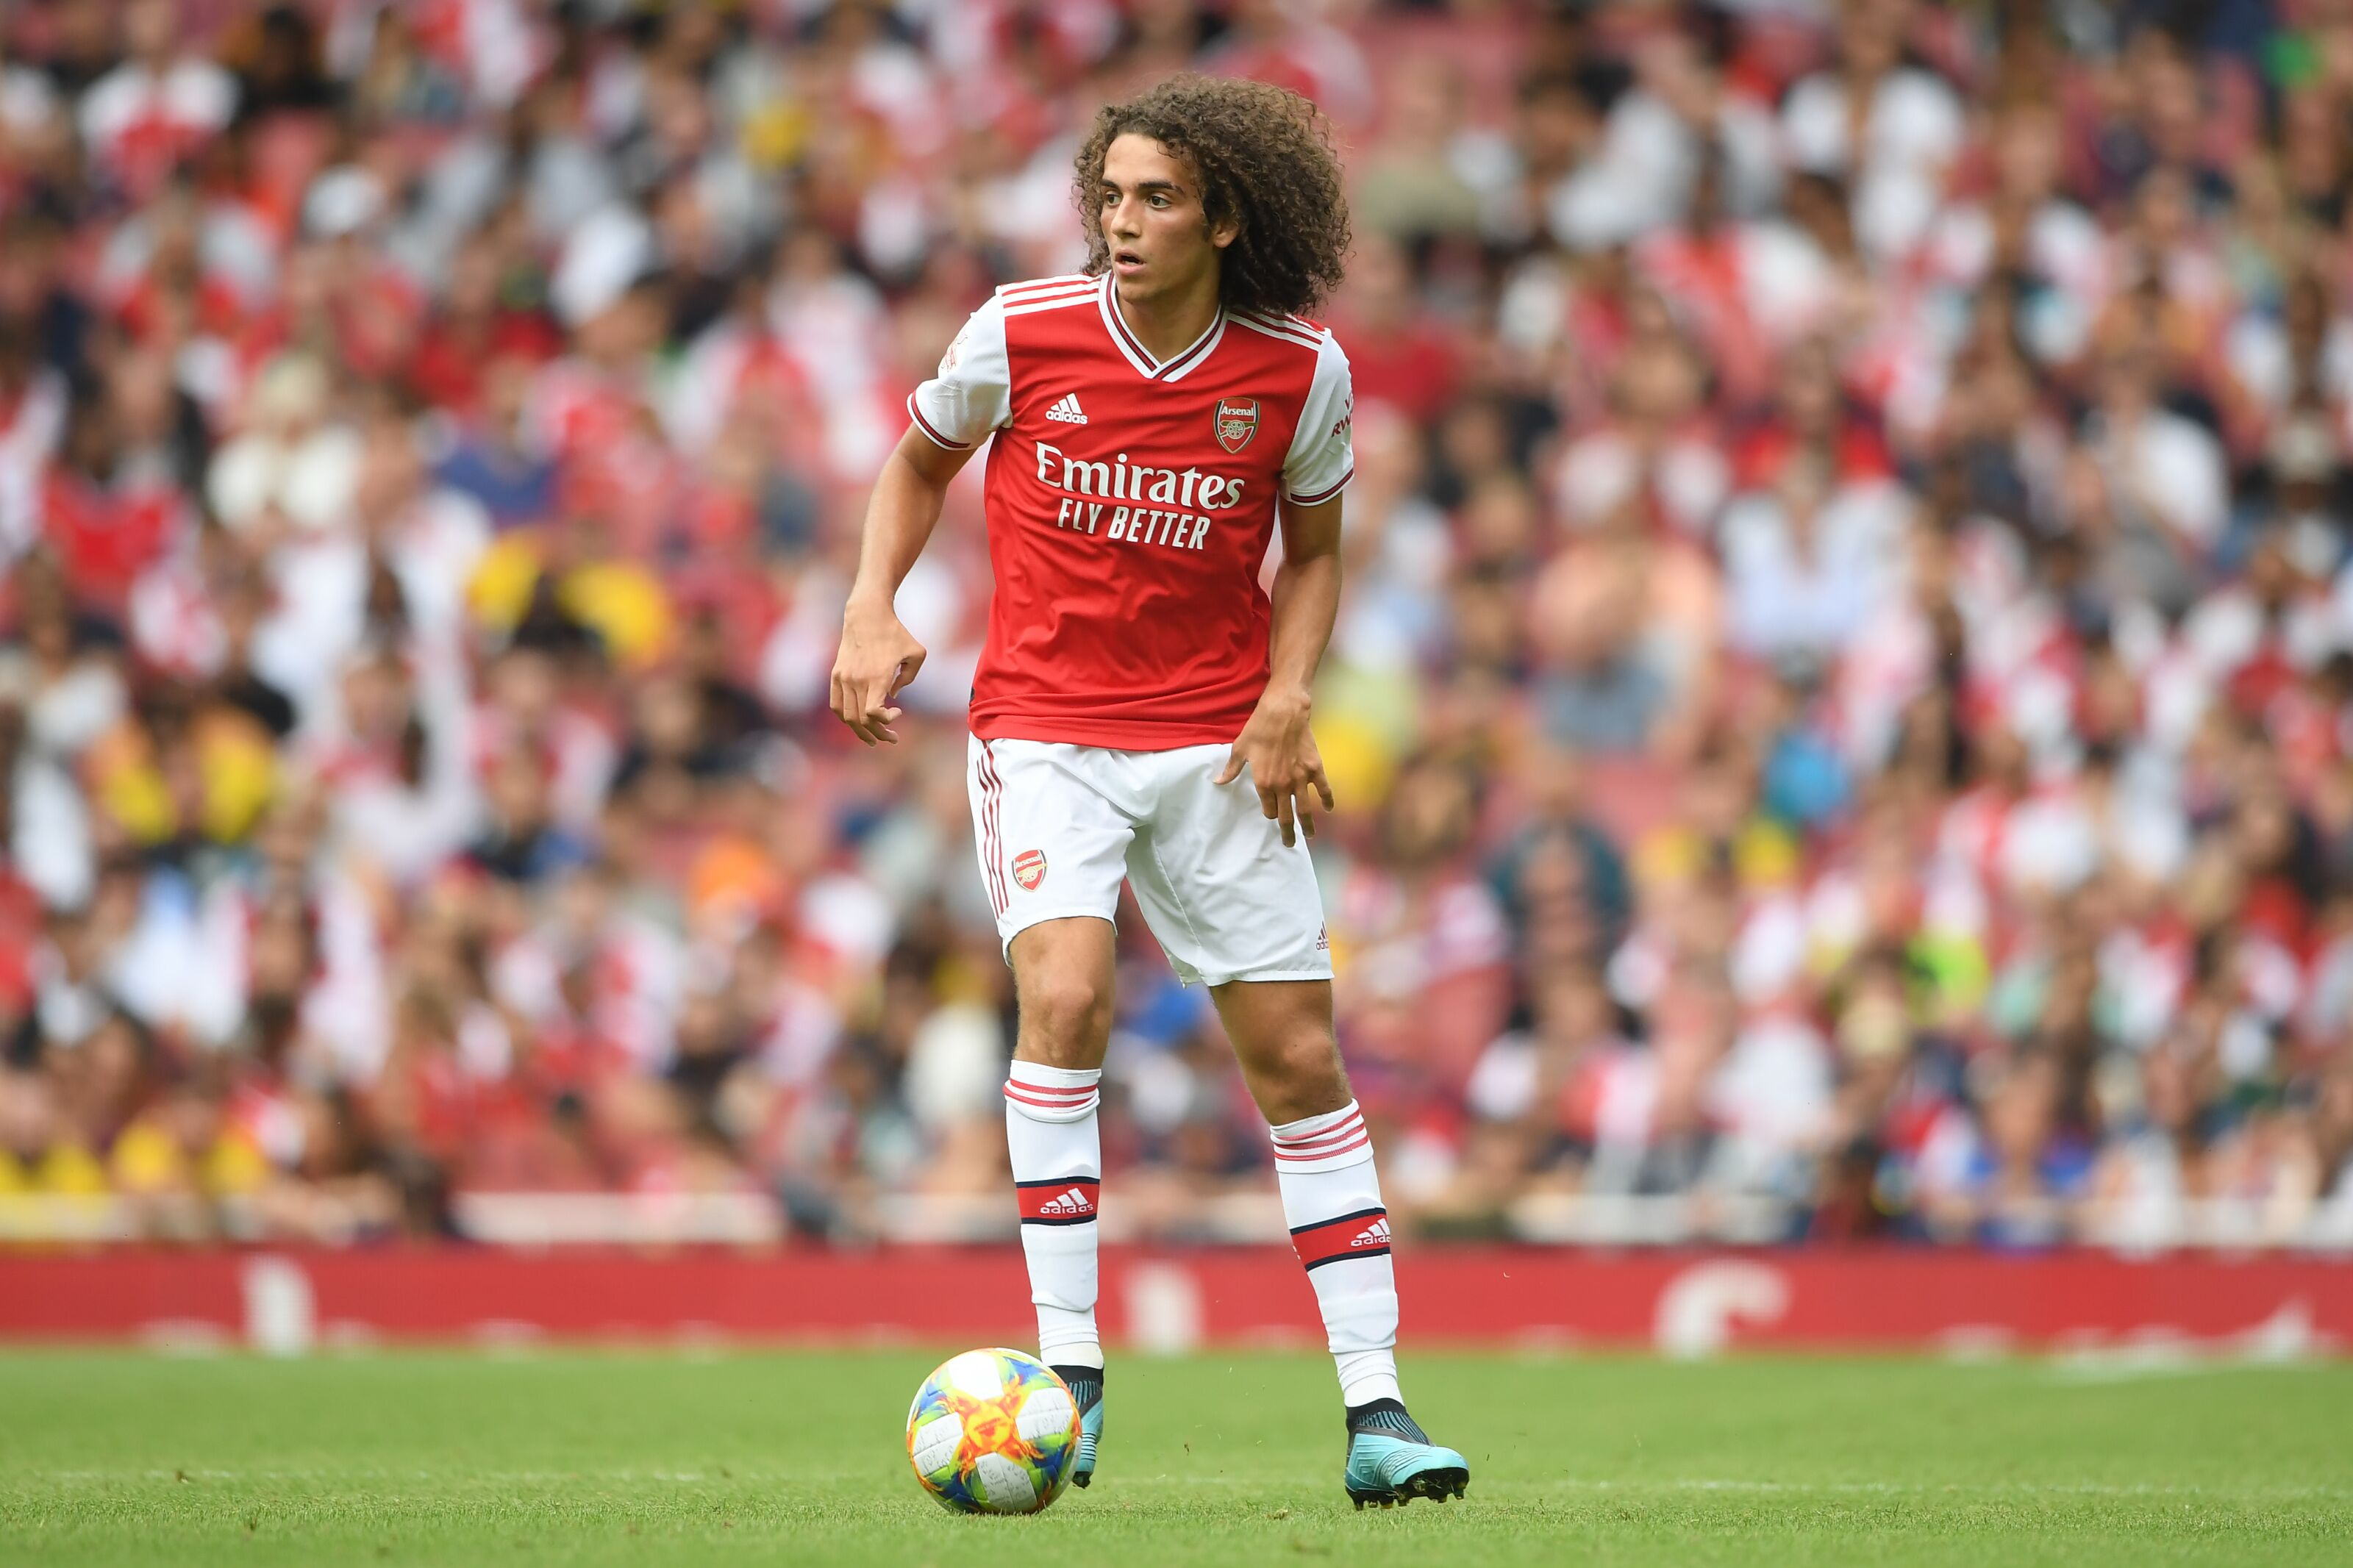 Arsenal: So much of Matteo Guendouzi is just a matter of time